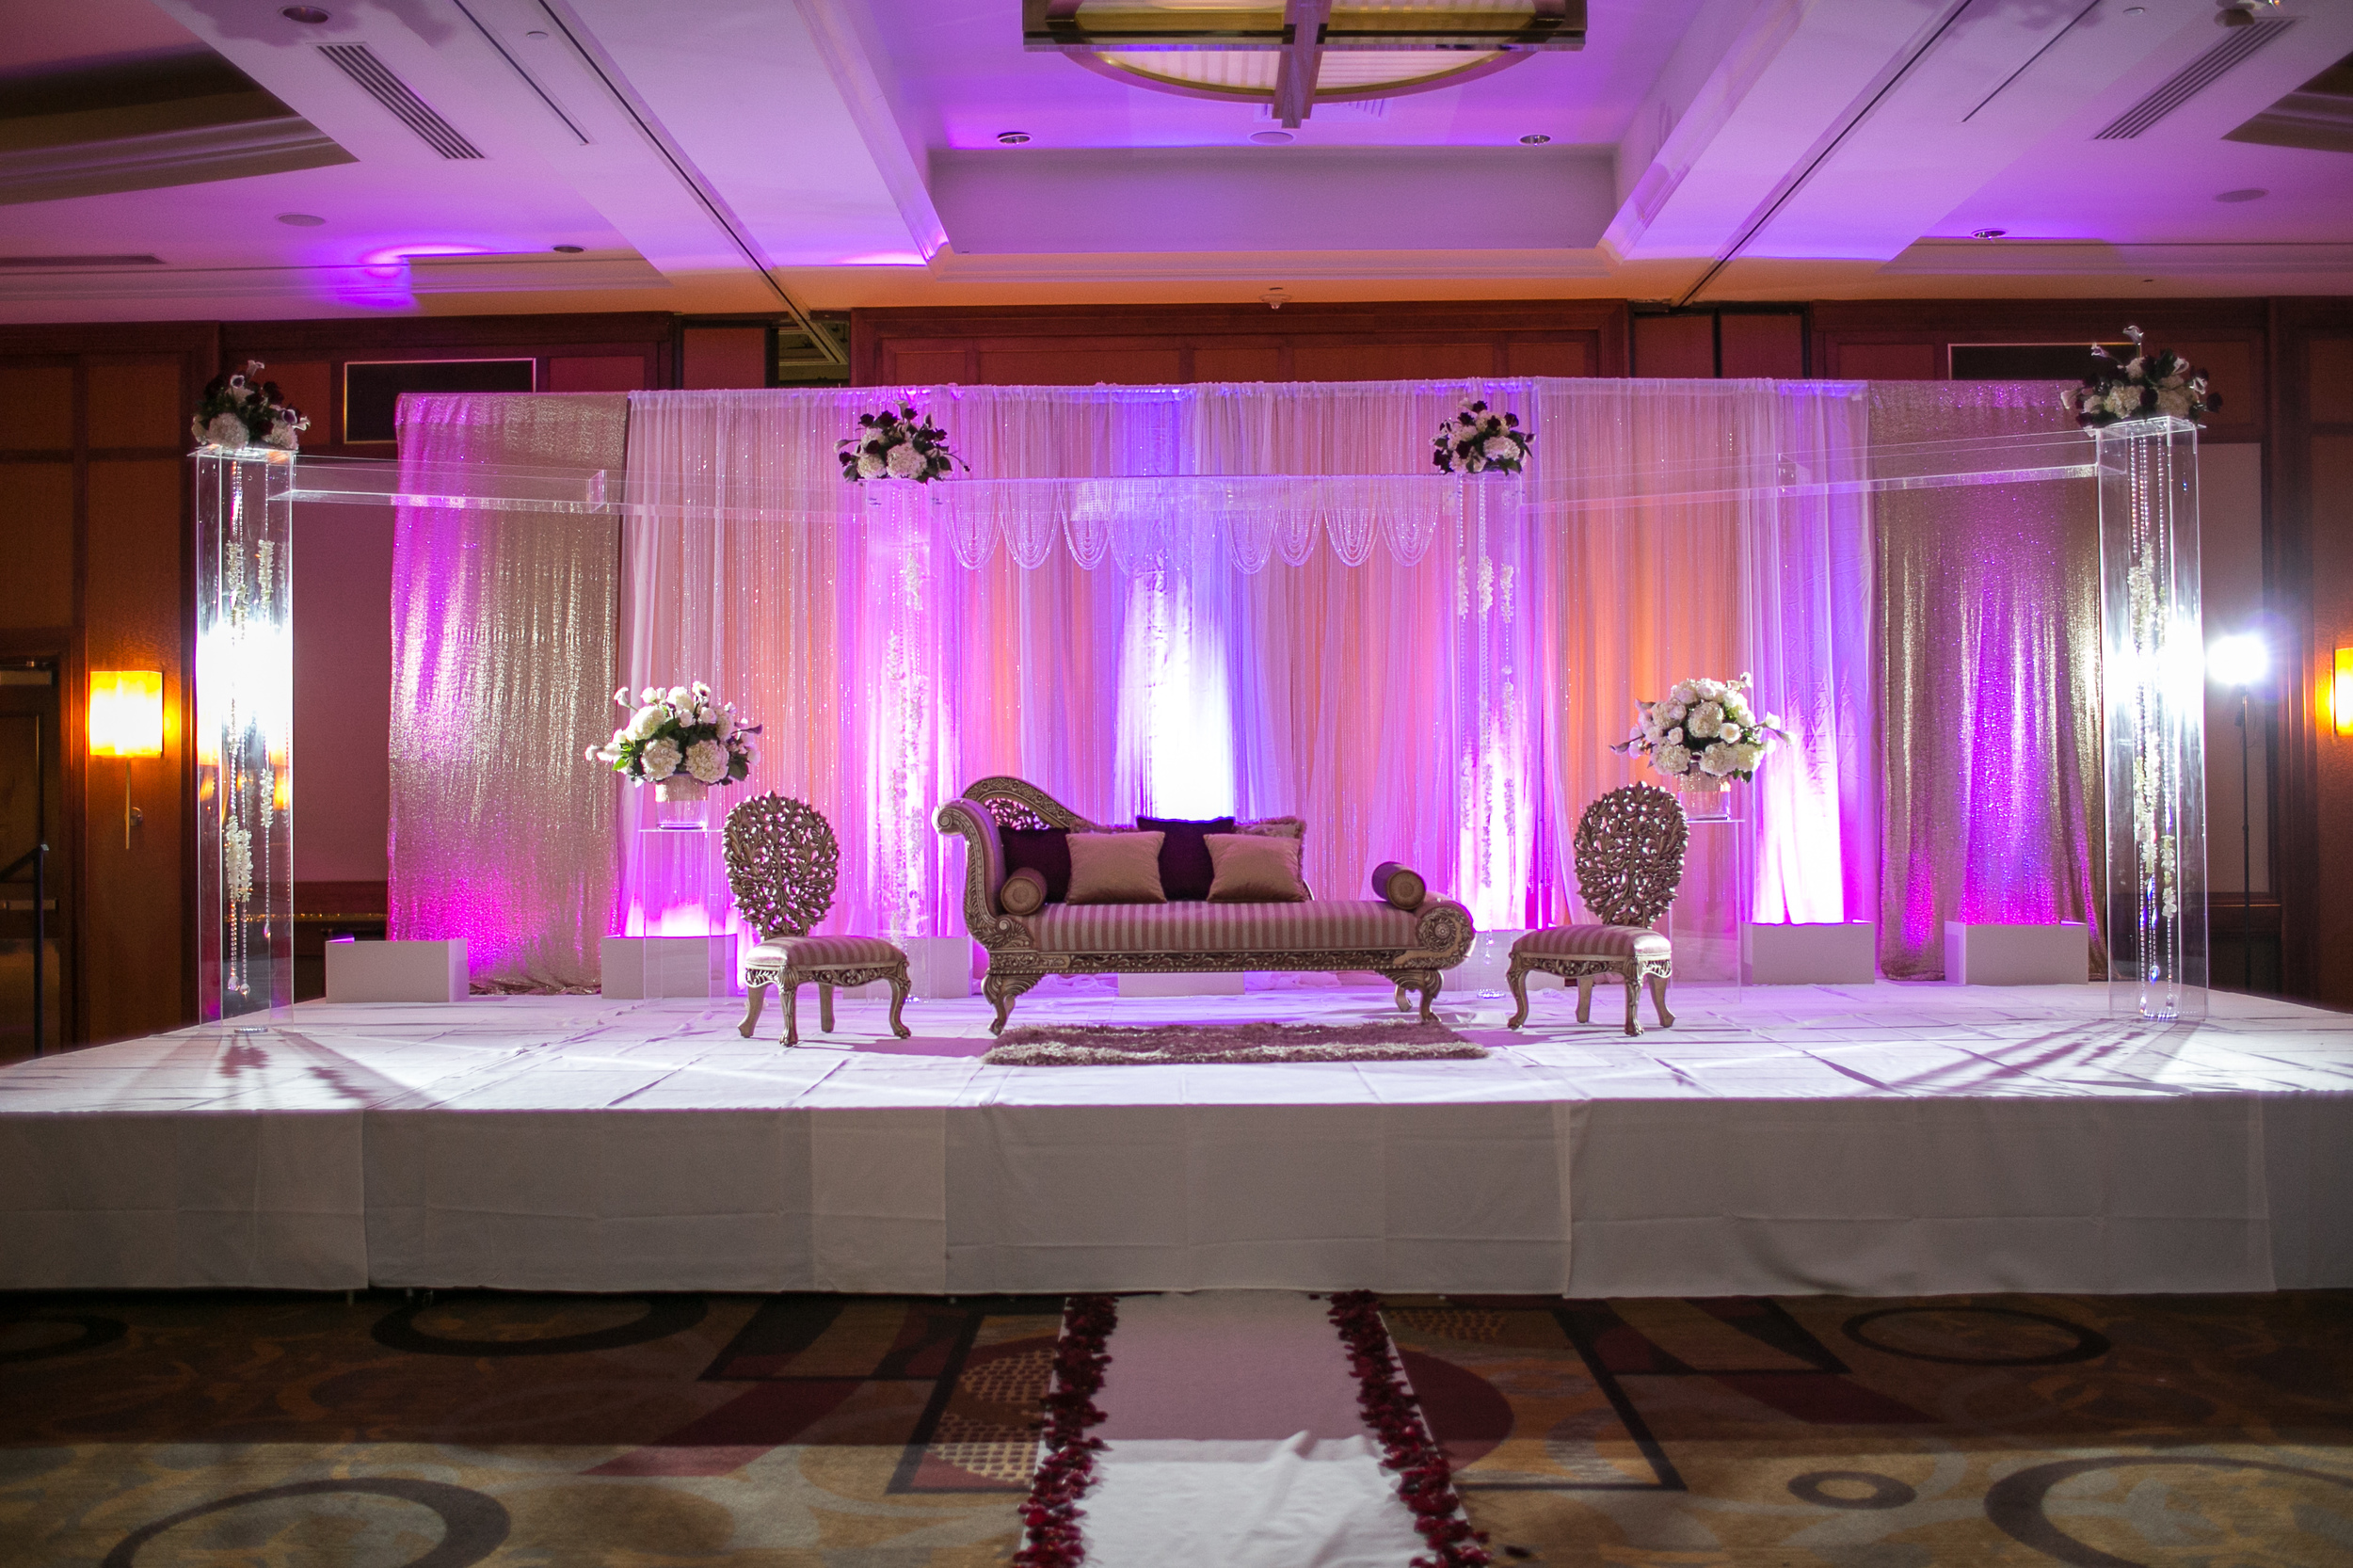 Imperial Decorations - Indian Wedding Backdrop Stage Decorations.jpg